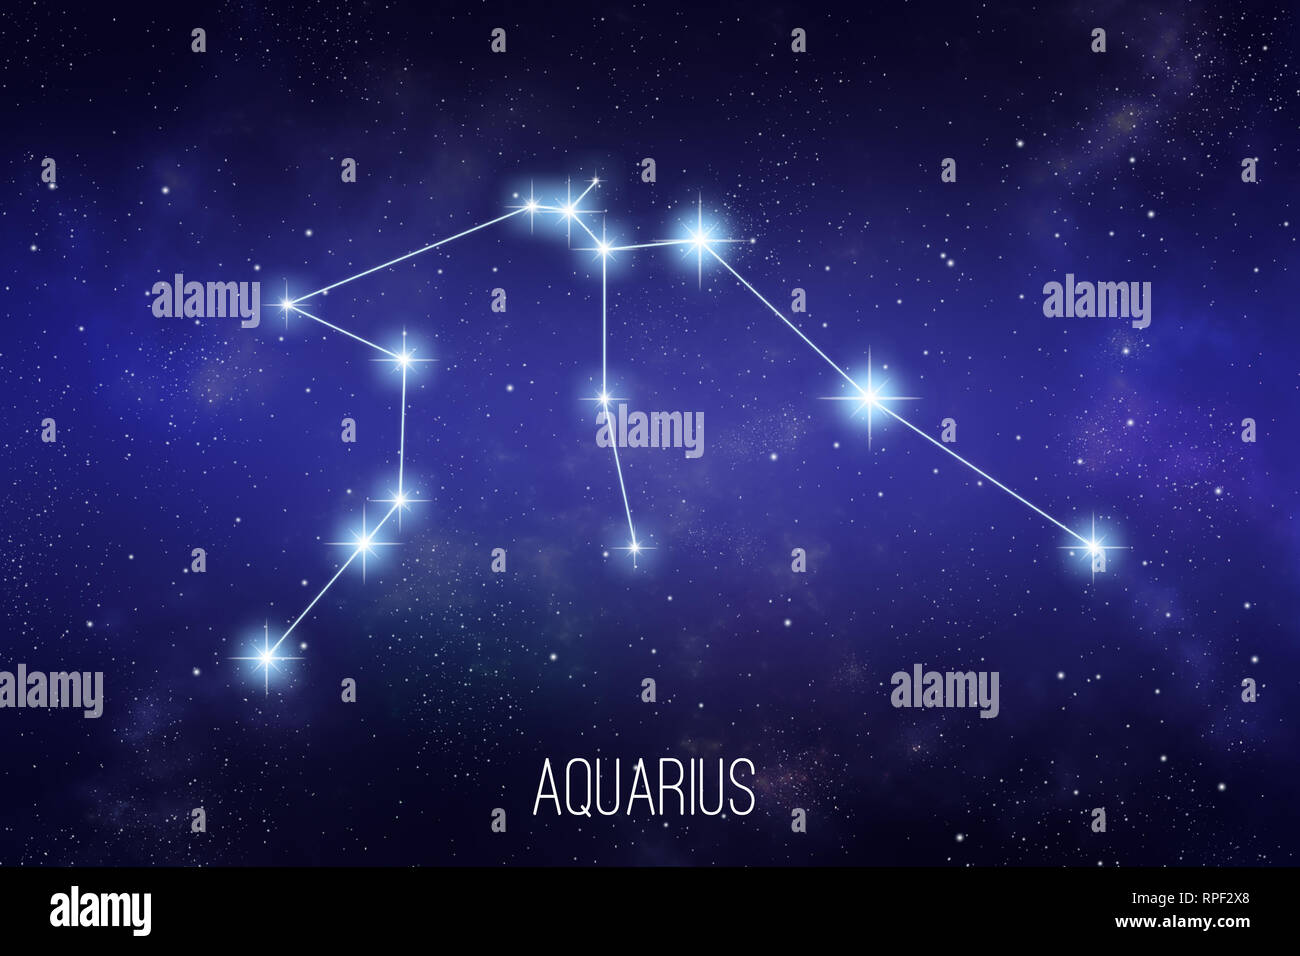 Aquarius zodiac constellation on a starry space background with lettering - Stock Image